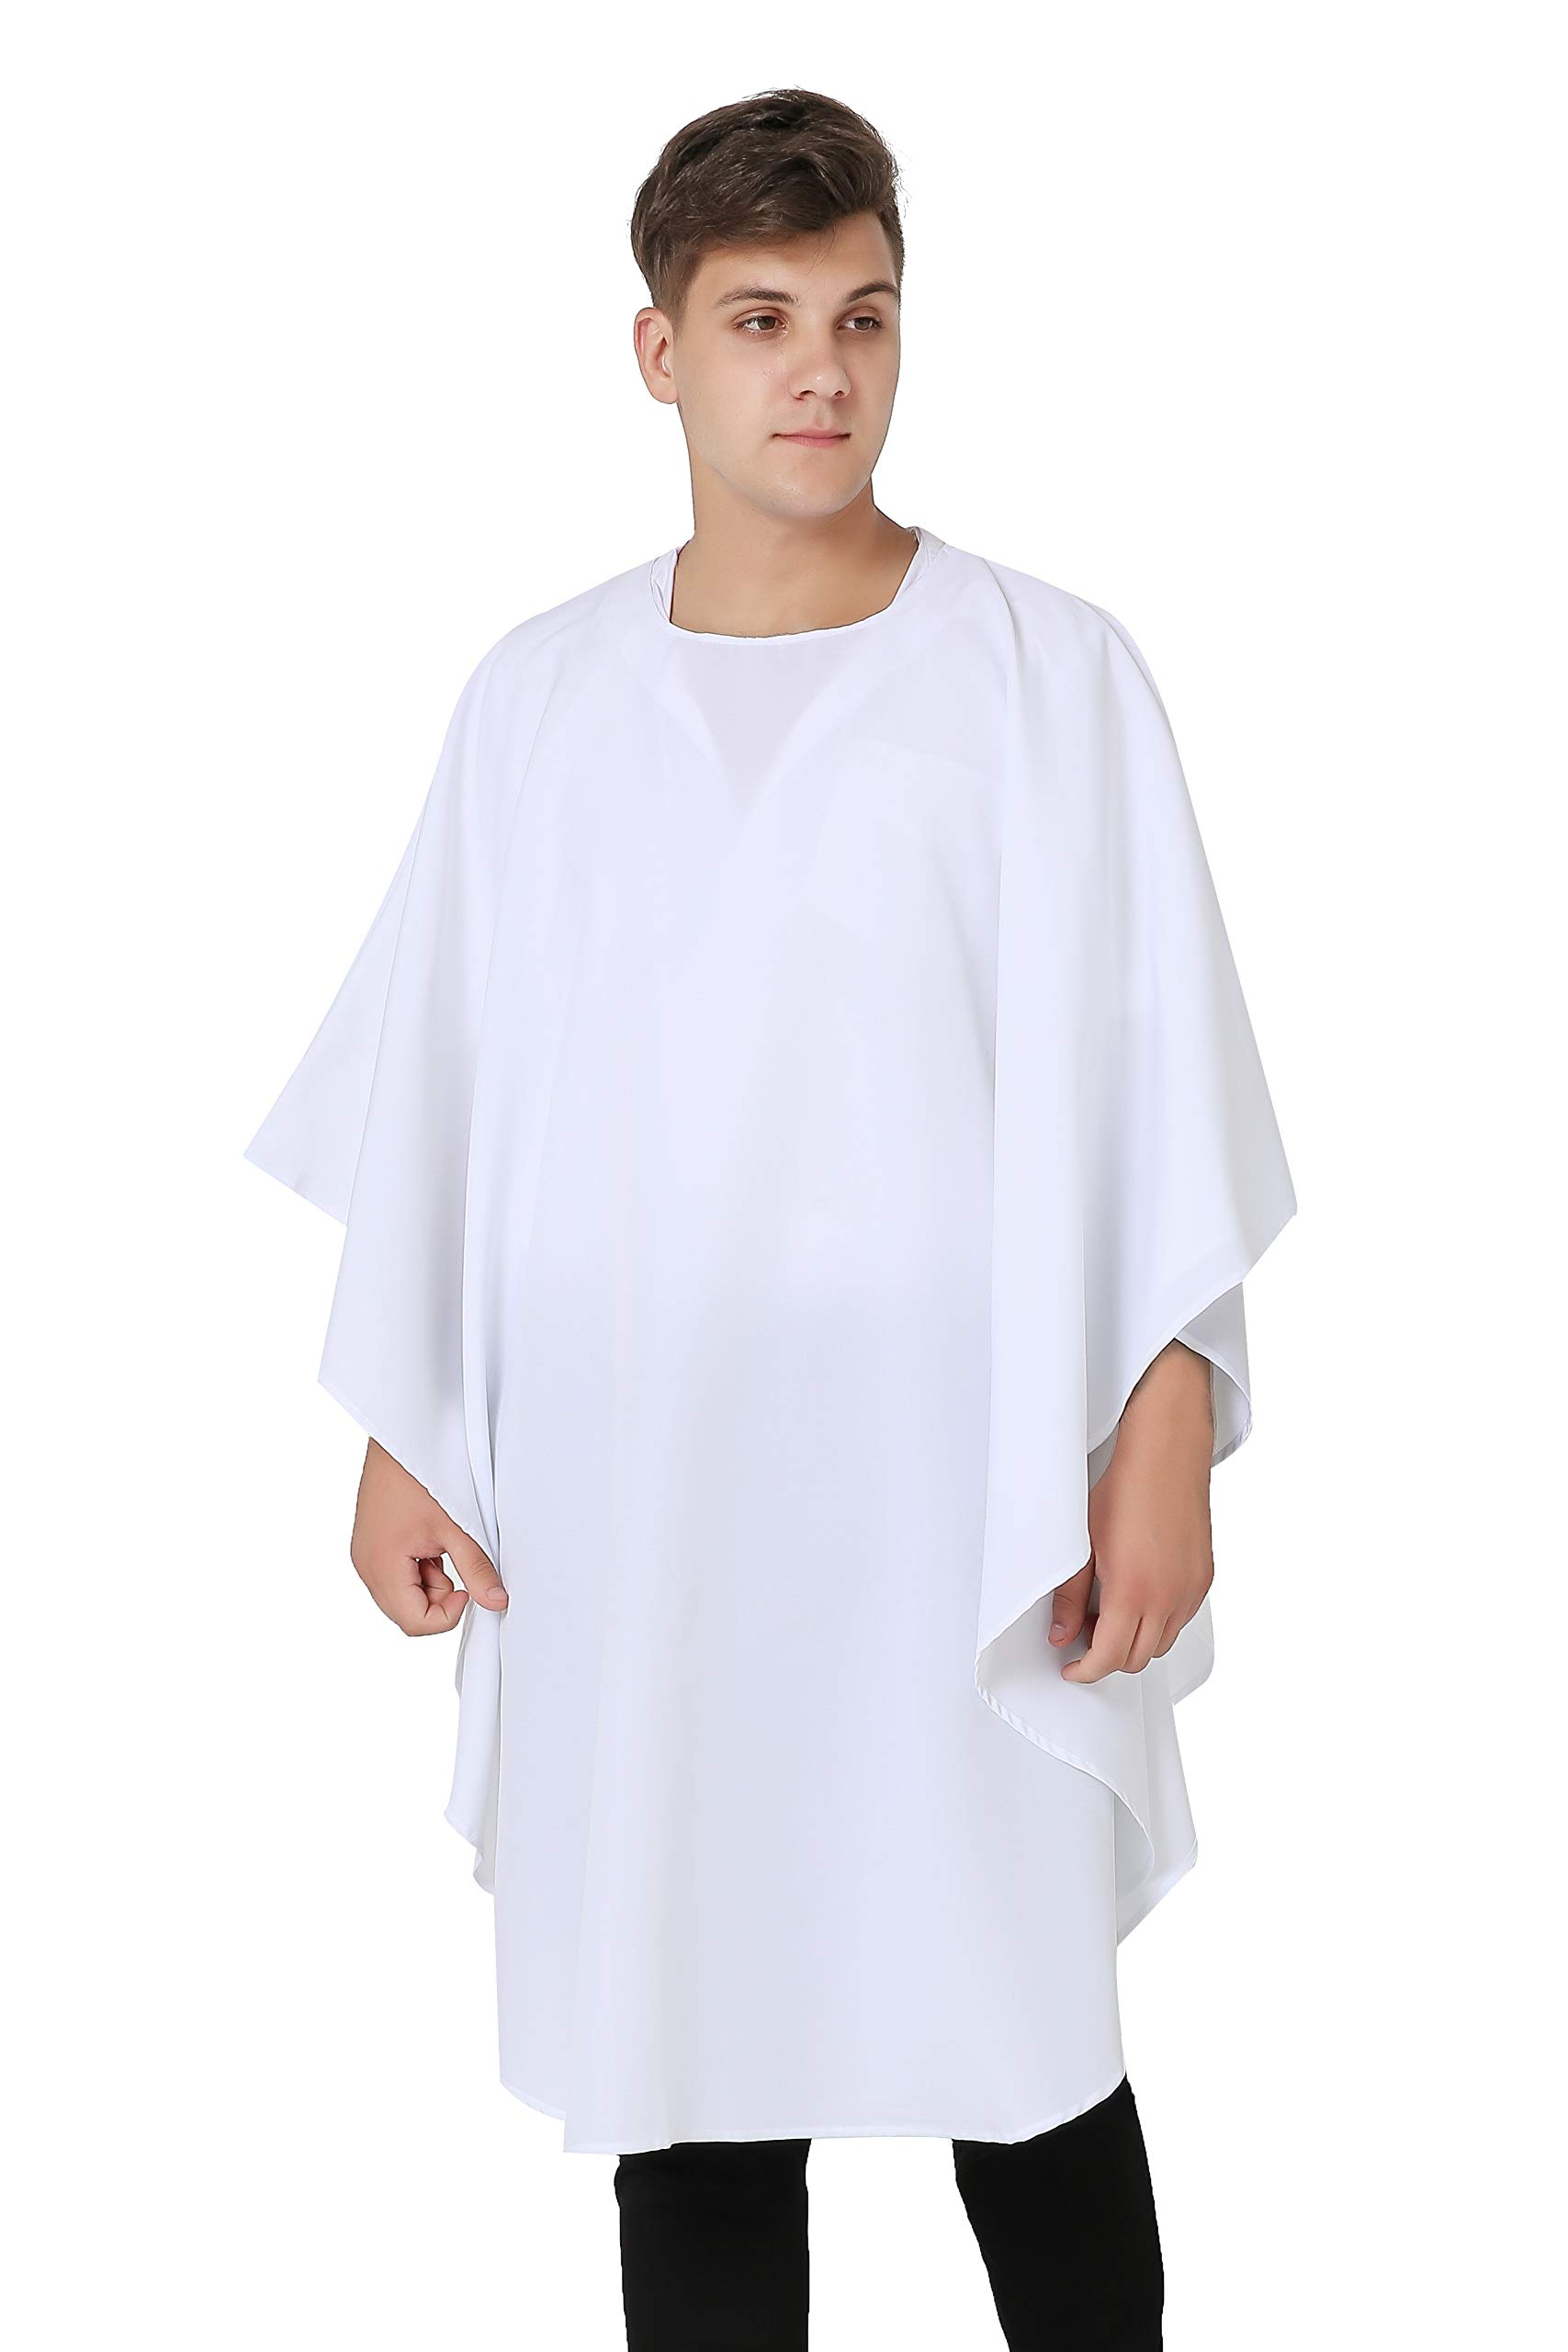 Ivyrobes Unisex Adults Clergy Chasuble White